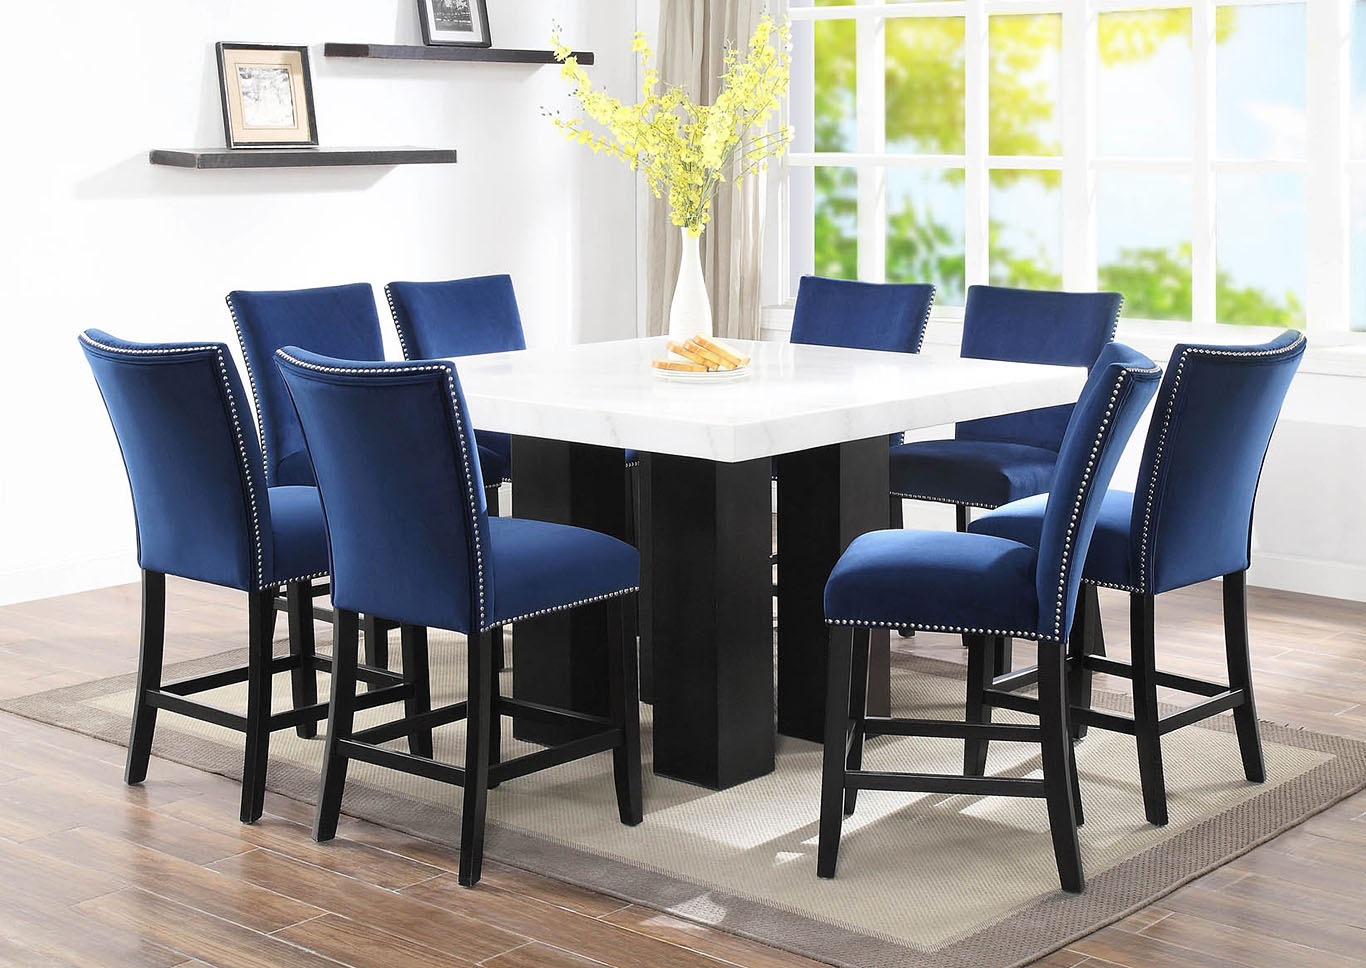 Camila Brown White Square Marble Top Dining Set W 8 Chairs Blue Velvet 5th Avenue Furniture Mi